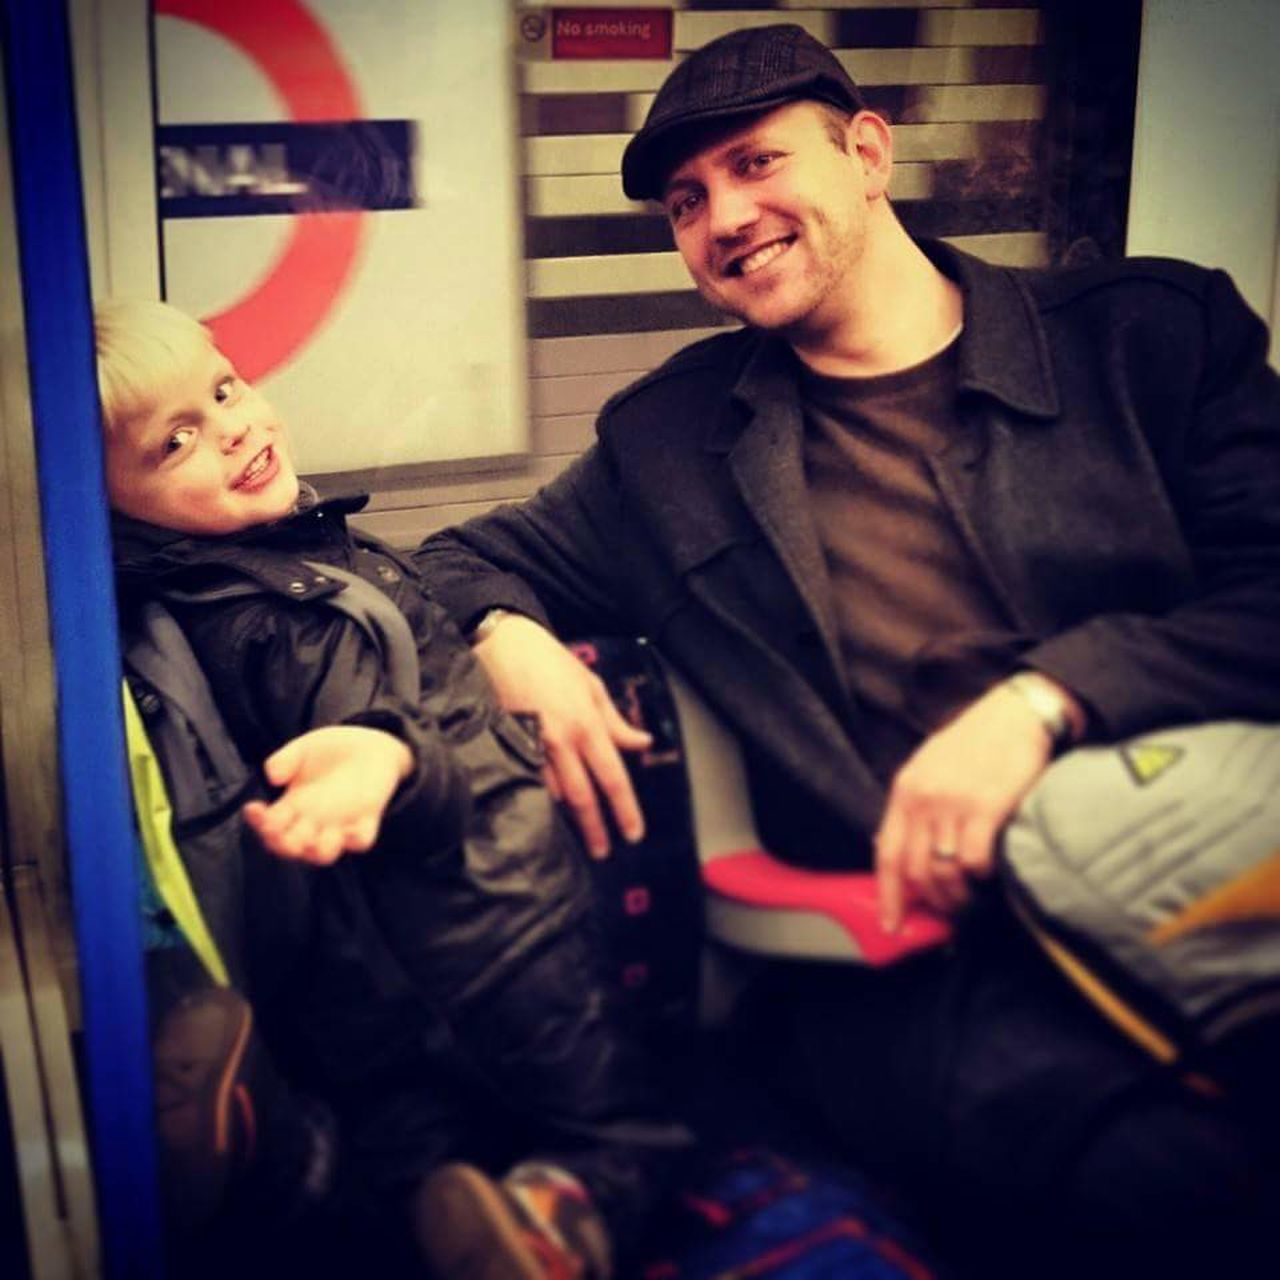 The City Light London Underground Traveling In The Tubes City Life Underground Station  Underground Lighting Commuting Home Commuter Train First Underground Experience Smiling Face Happy Lads Fastrack Fast Train Fast Lifestyle Background Defocus Background Colour.